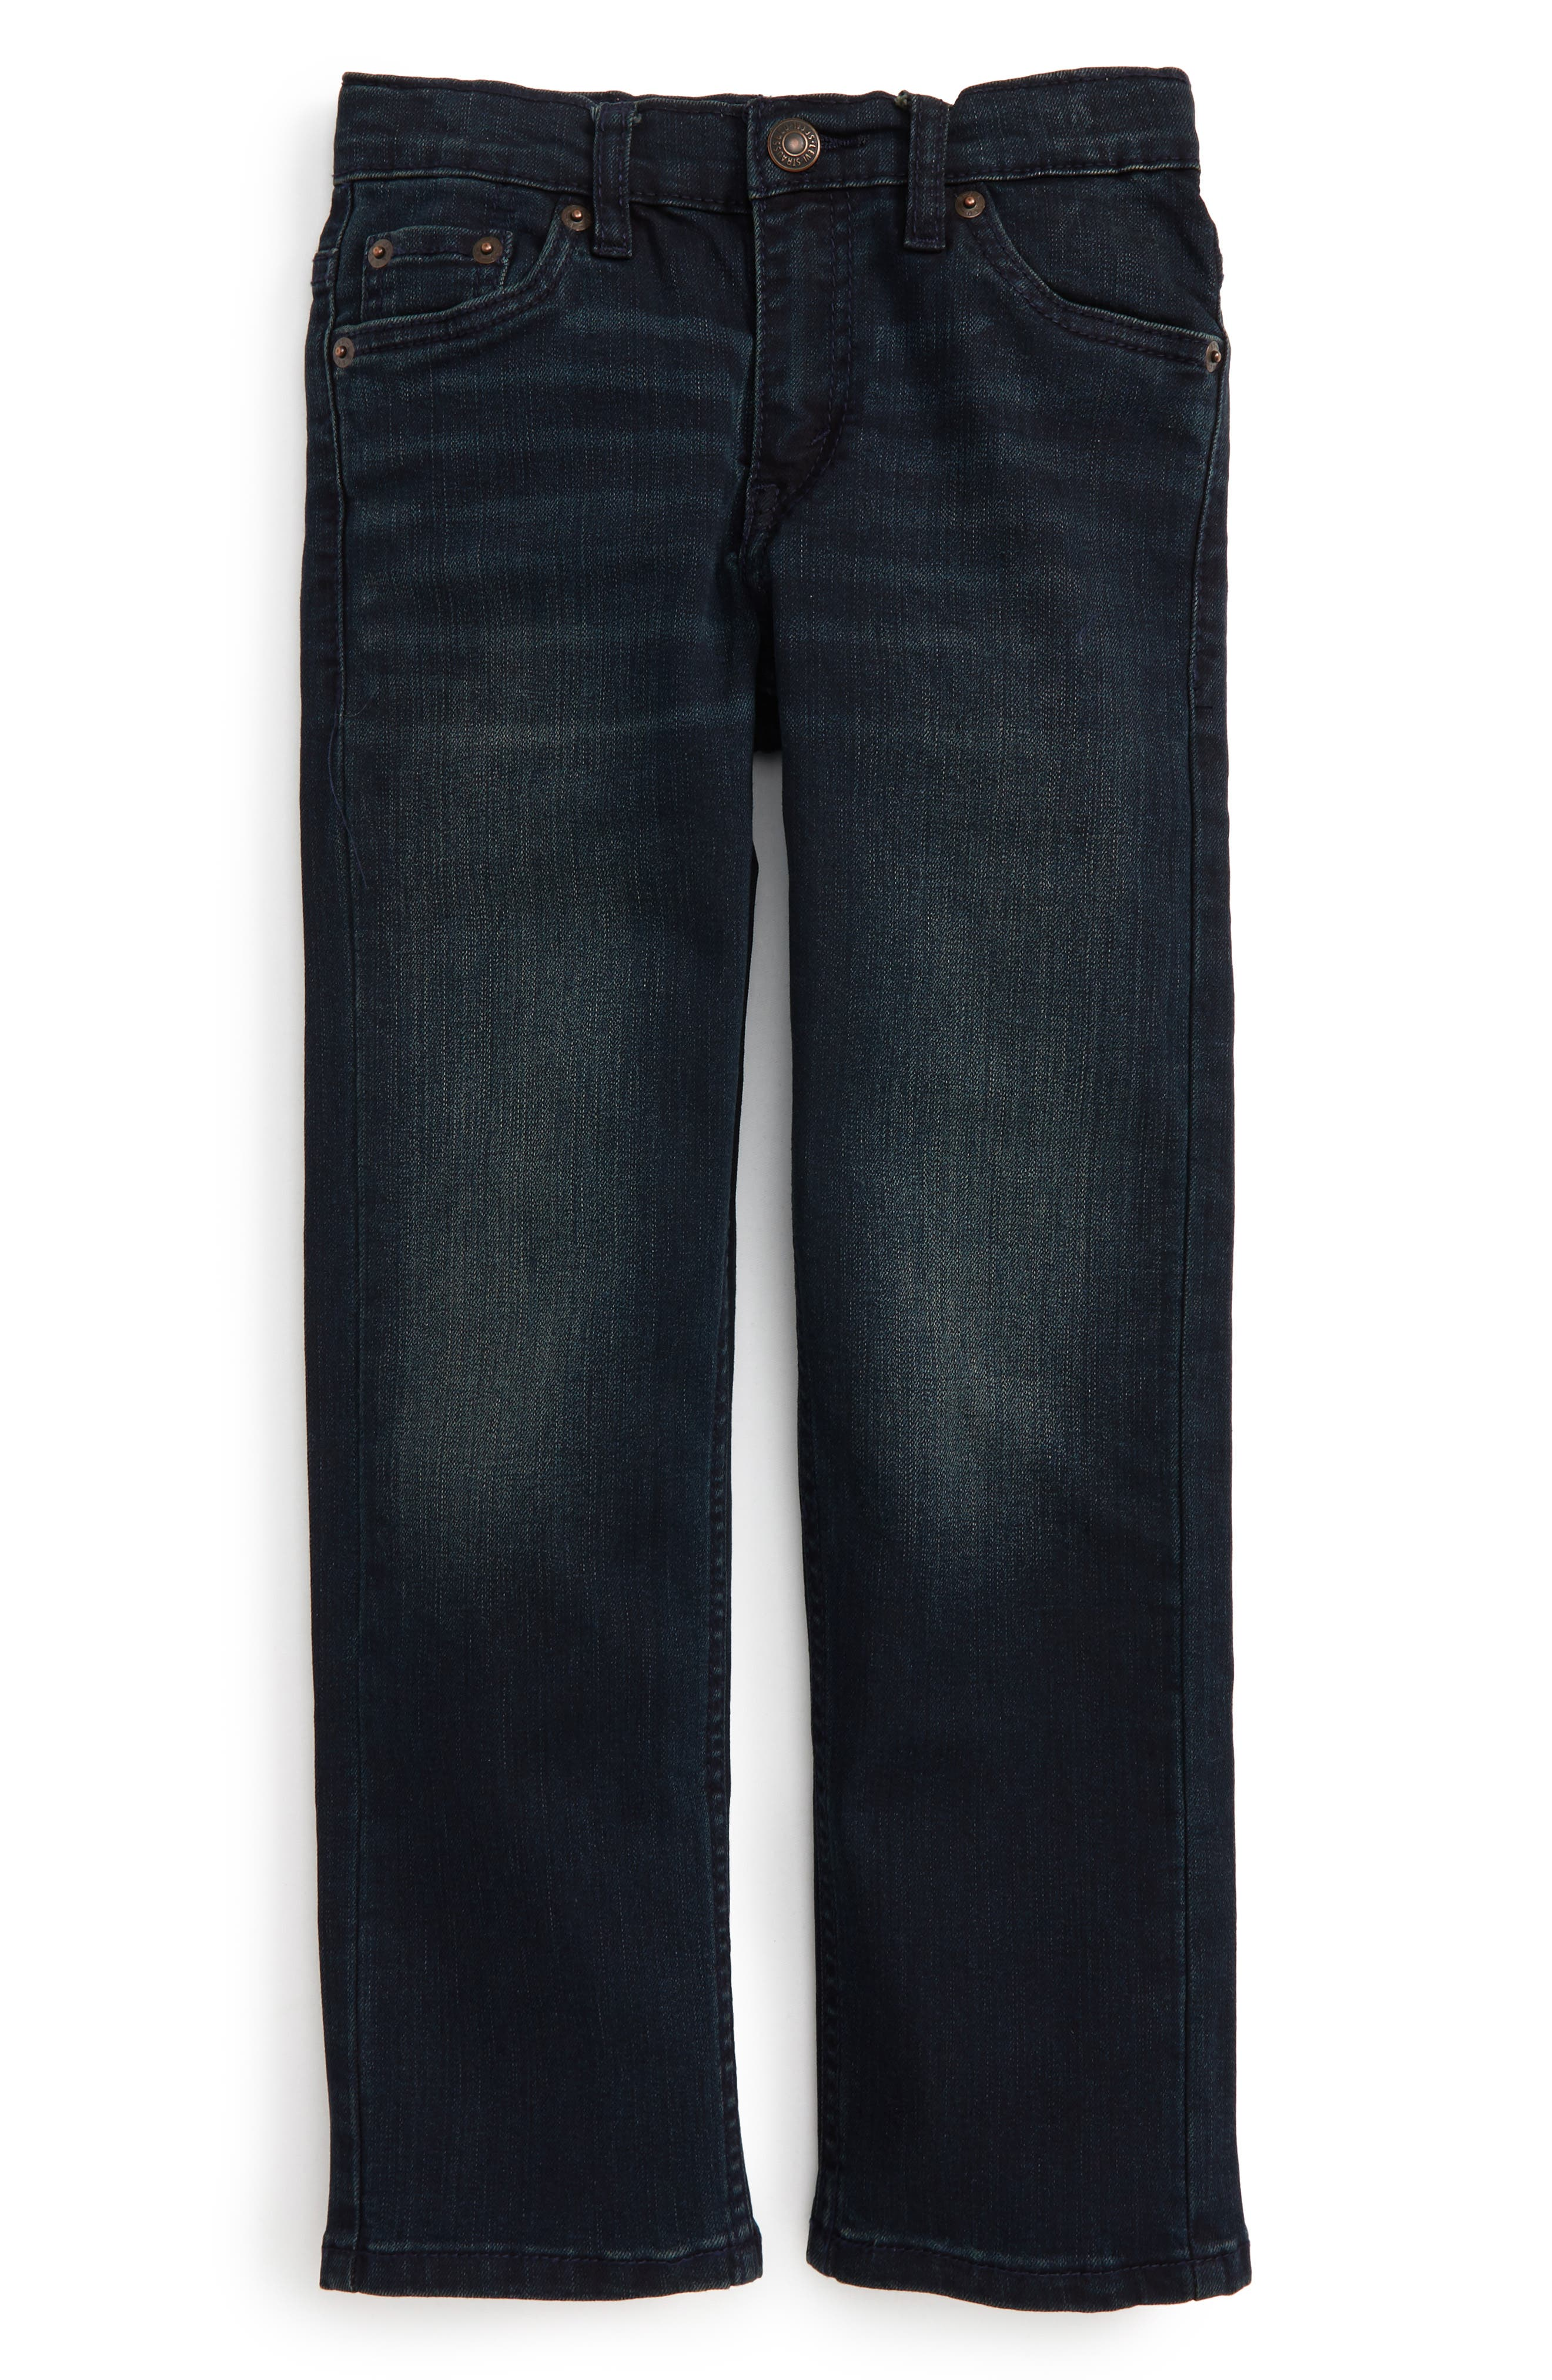 511 Slim Fit Jeans,                             Main thumbnail 1, color,                             403